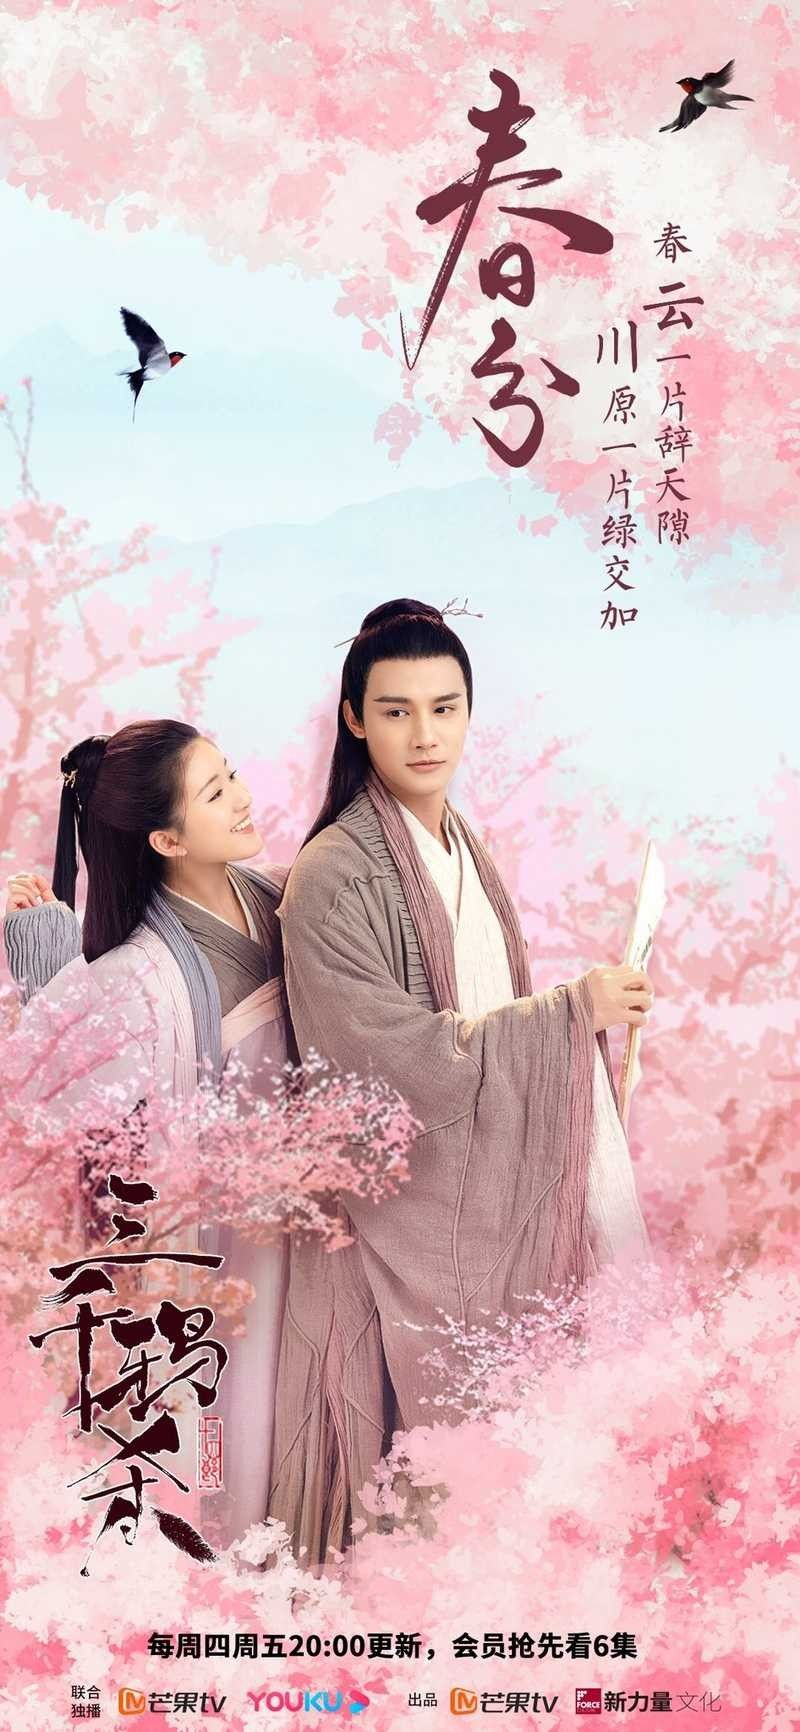 Love of thousand years (2020) in 2020 Historical drama